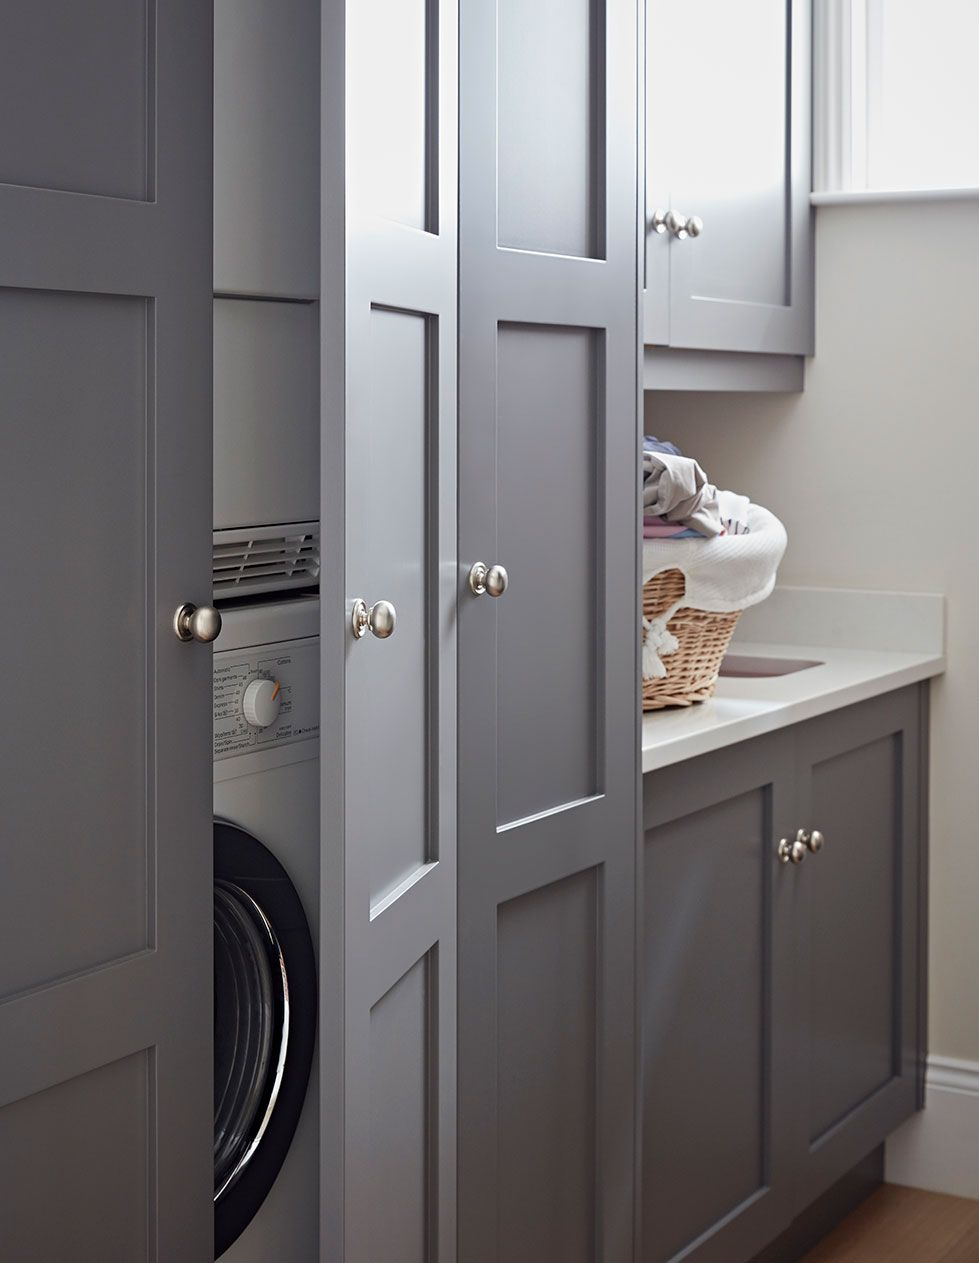 1 Make Four Piles The Great Closet Clean Out Is Your: Small Utility Room, Laundry Room